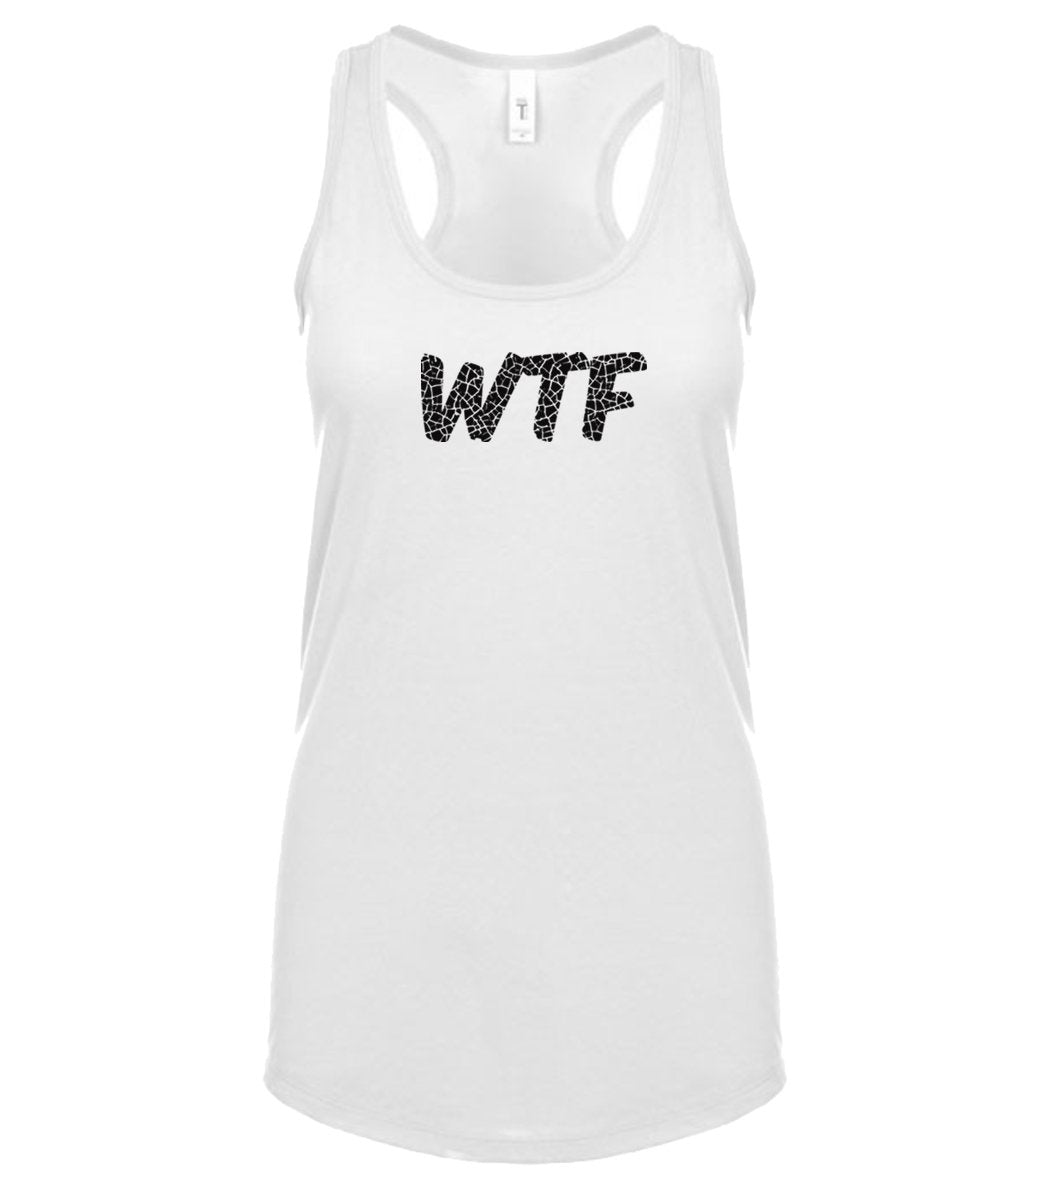 white WTF racerback tank top for women